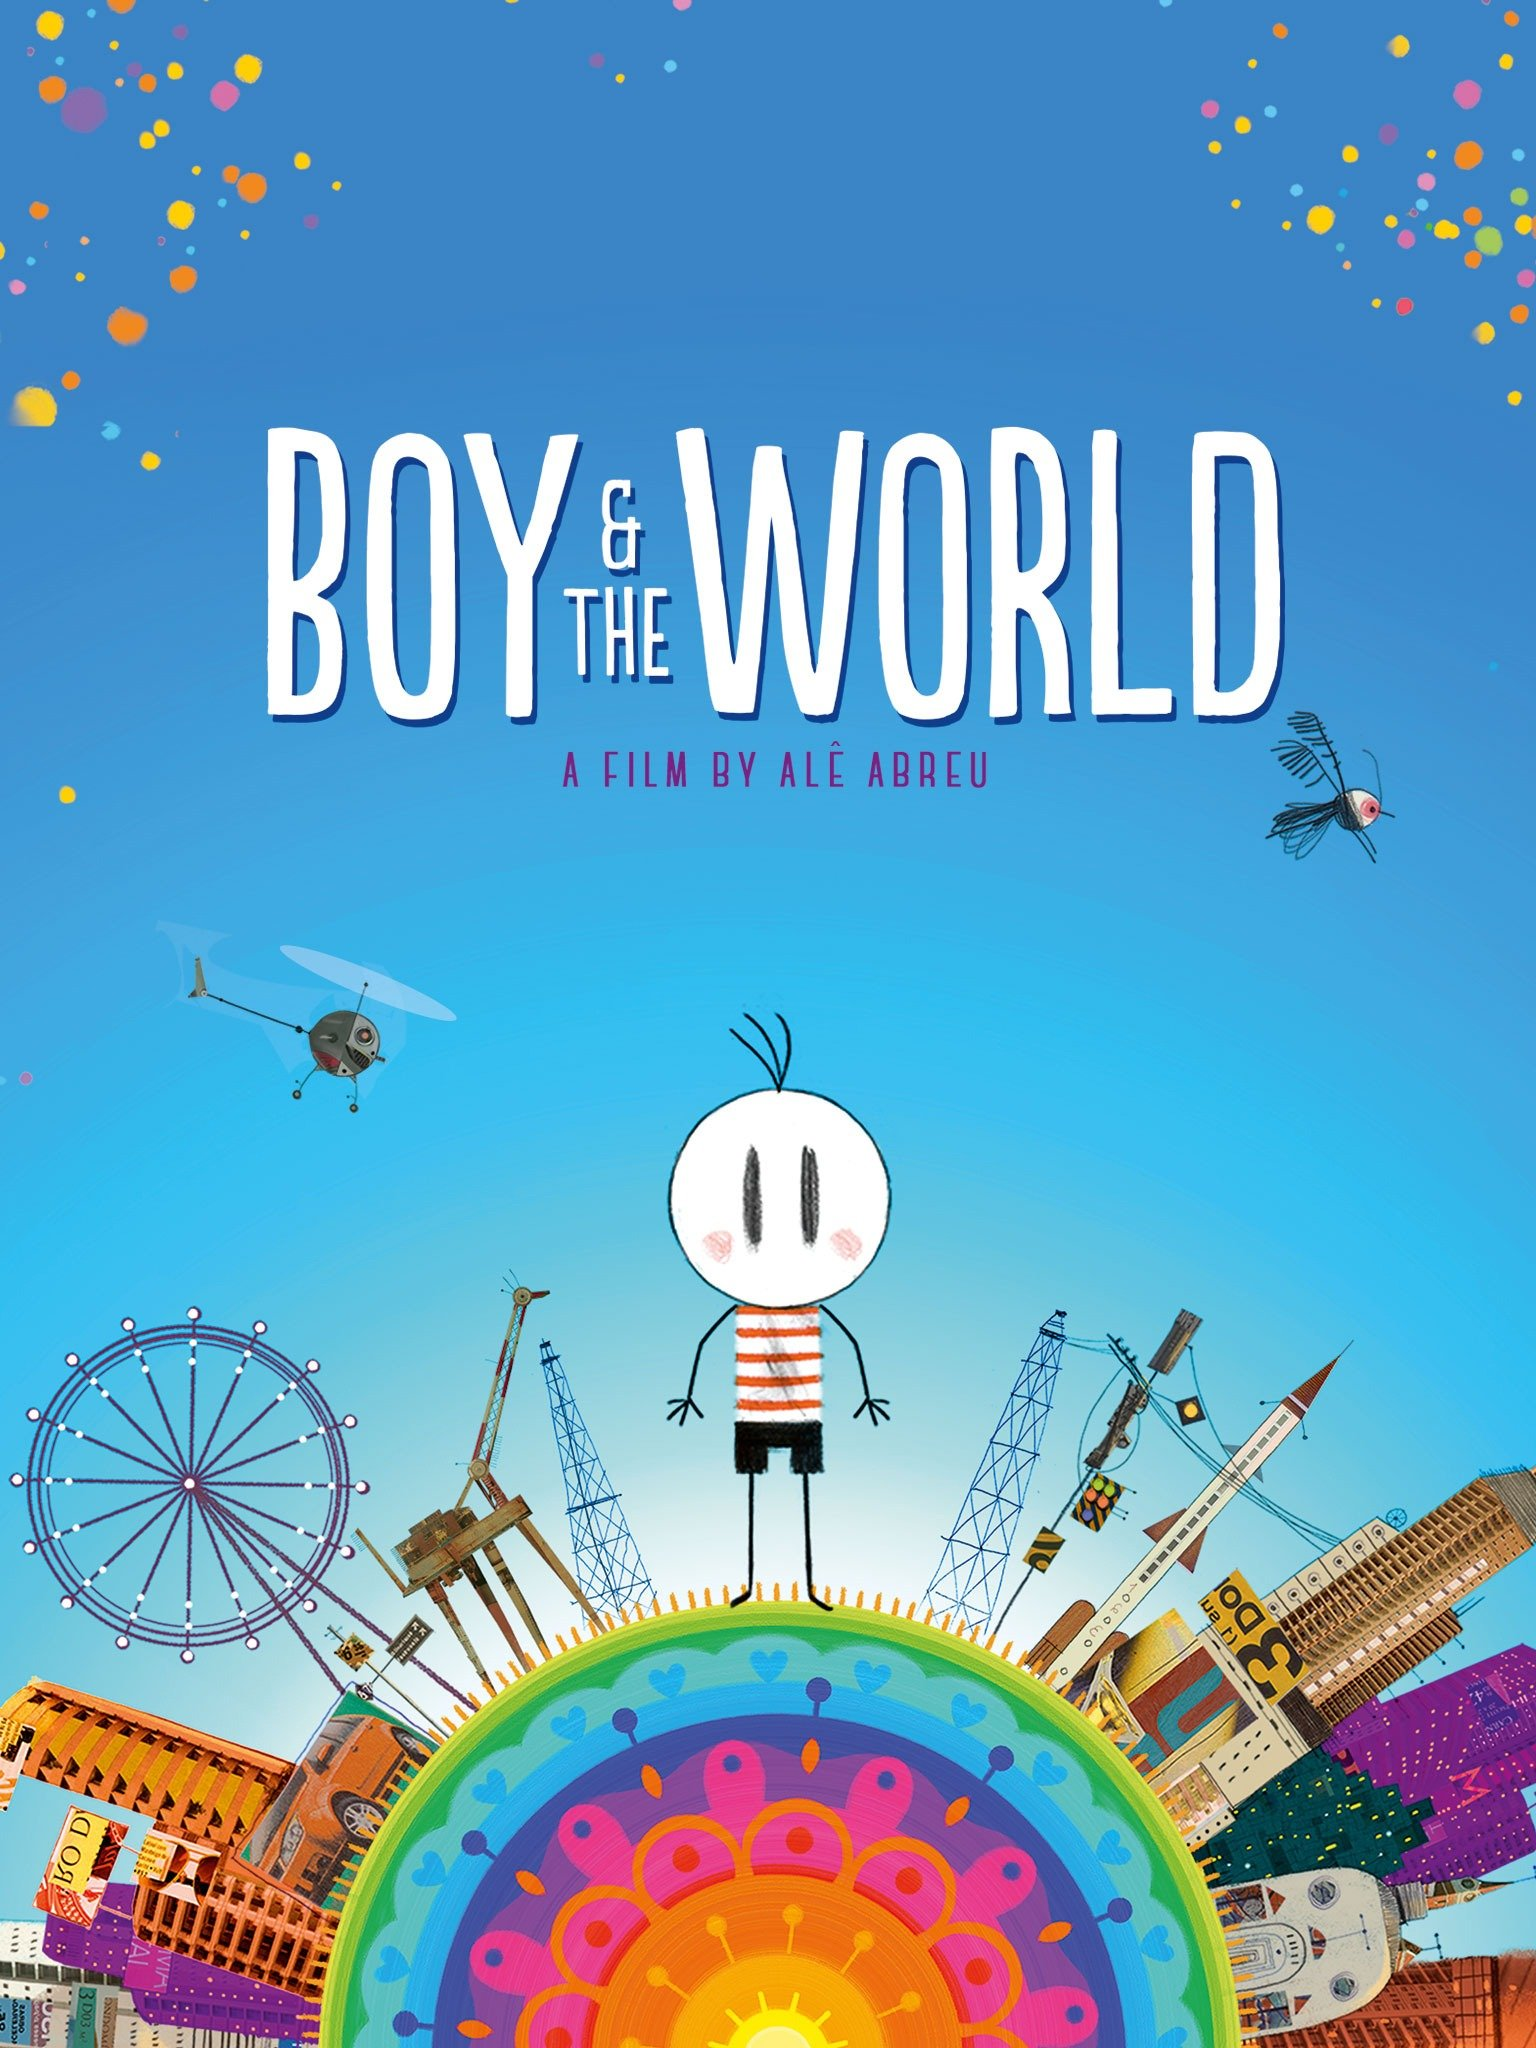 Boy and the World (O Menino e o Mundo) (2015) - Rotten Tomatoes